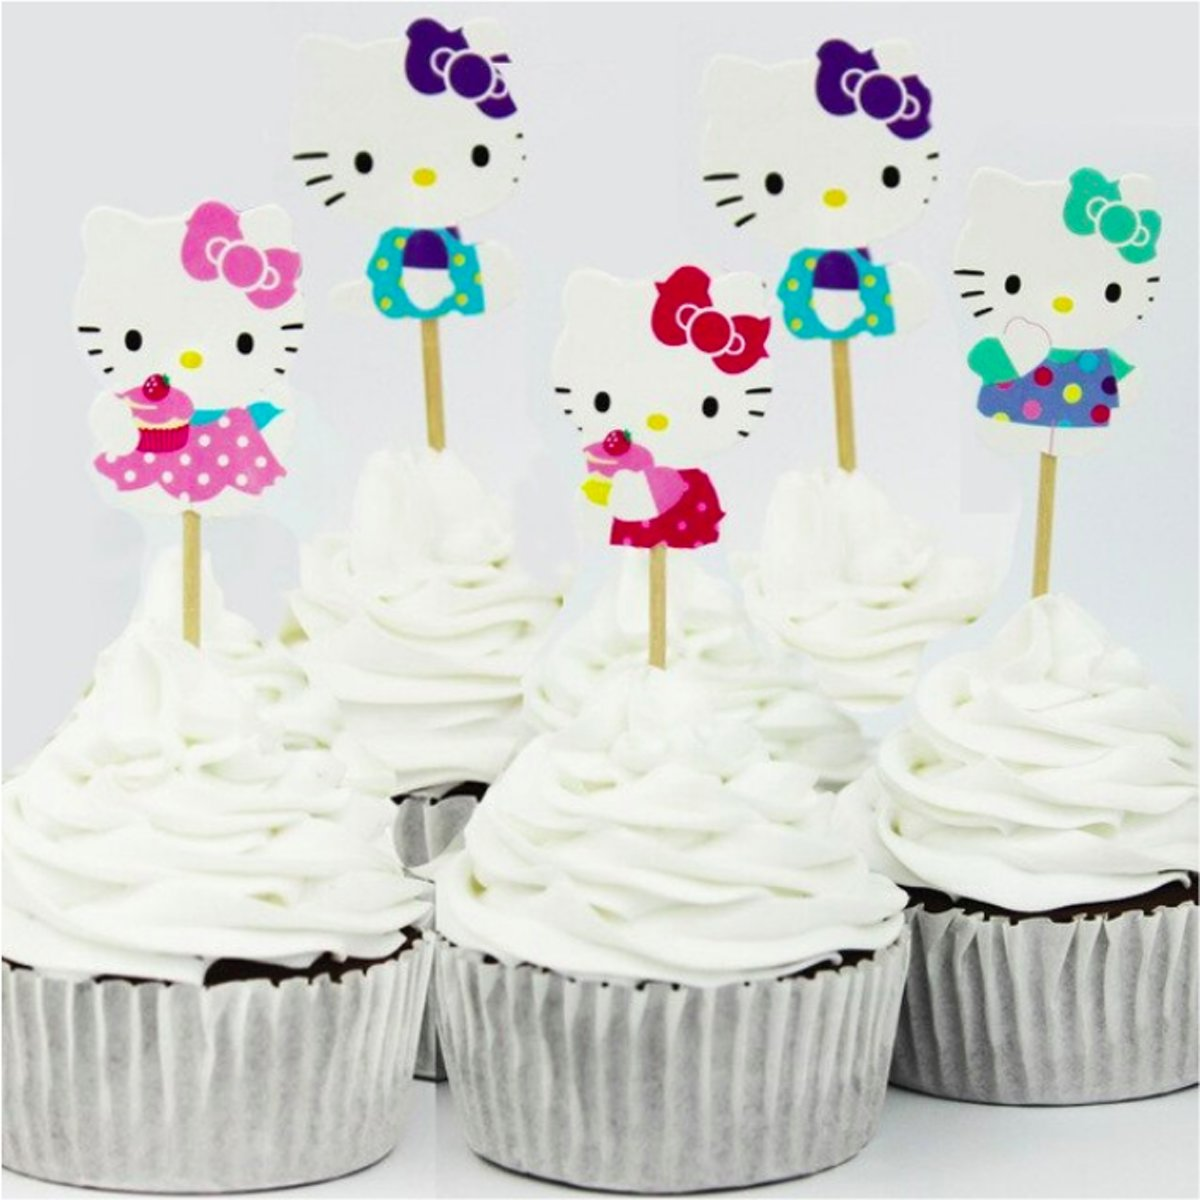 ProductsGoods - 36x Leuke cocktailprikkers Hello Kitty | Hello Kitty | Verjaardag | Sateprikkers | Traktatie | Feest